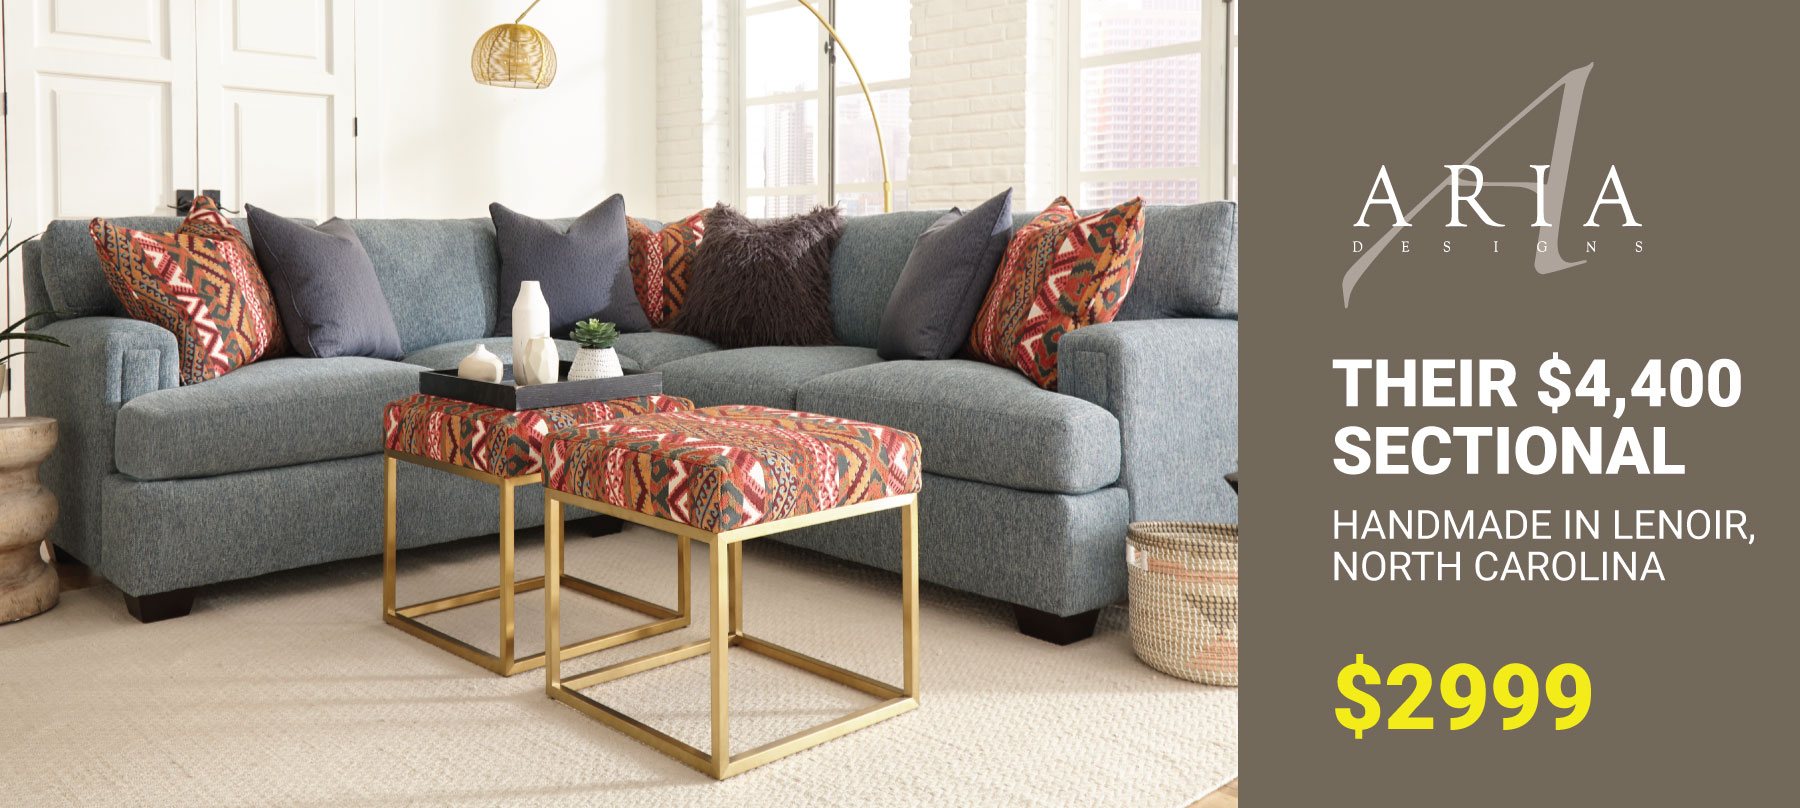 Aria - Their 4400 SECTIONAL